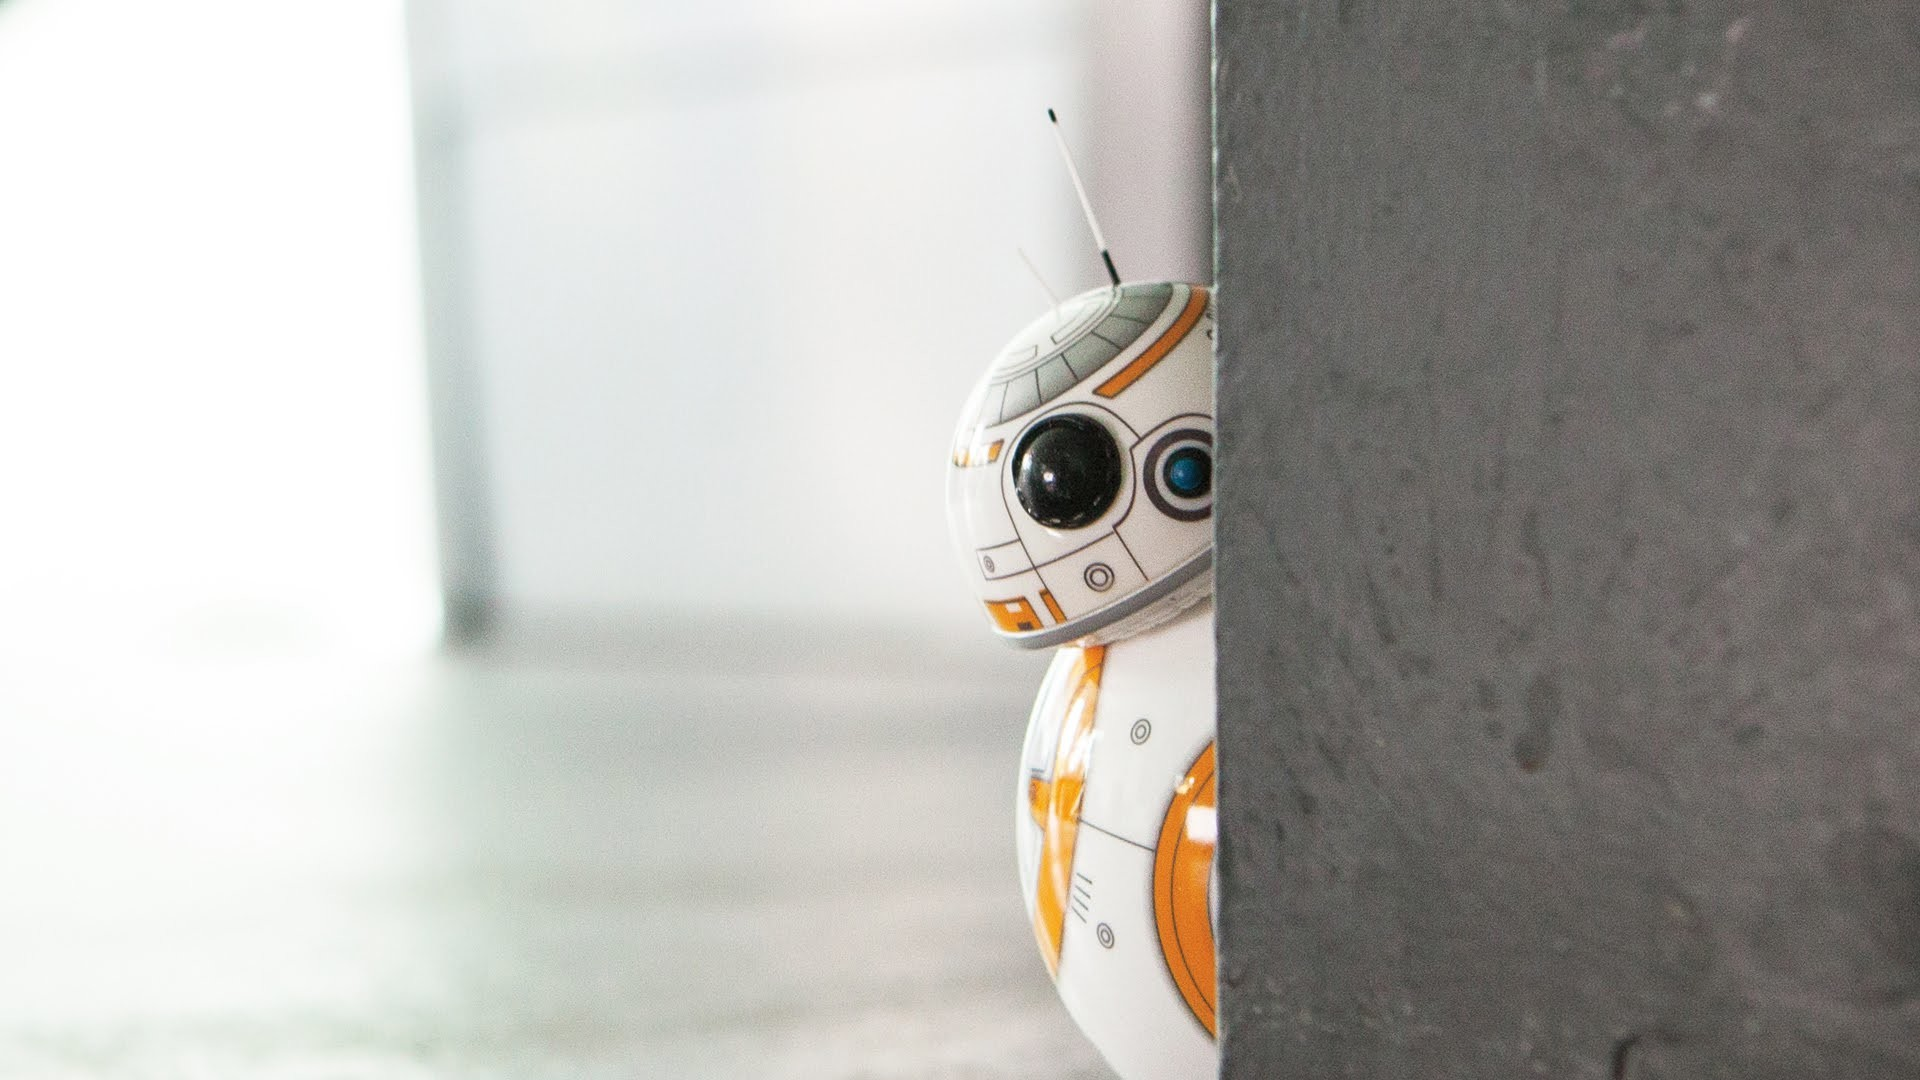 Star Wars Iphone Wallpaper Bb8 69 Images